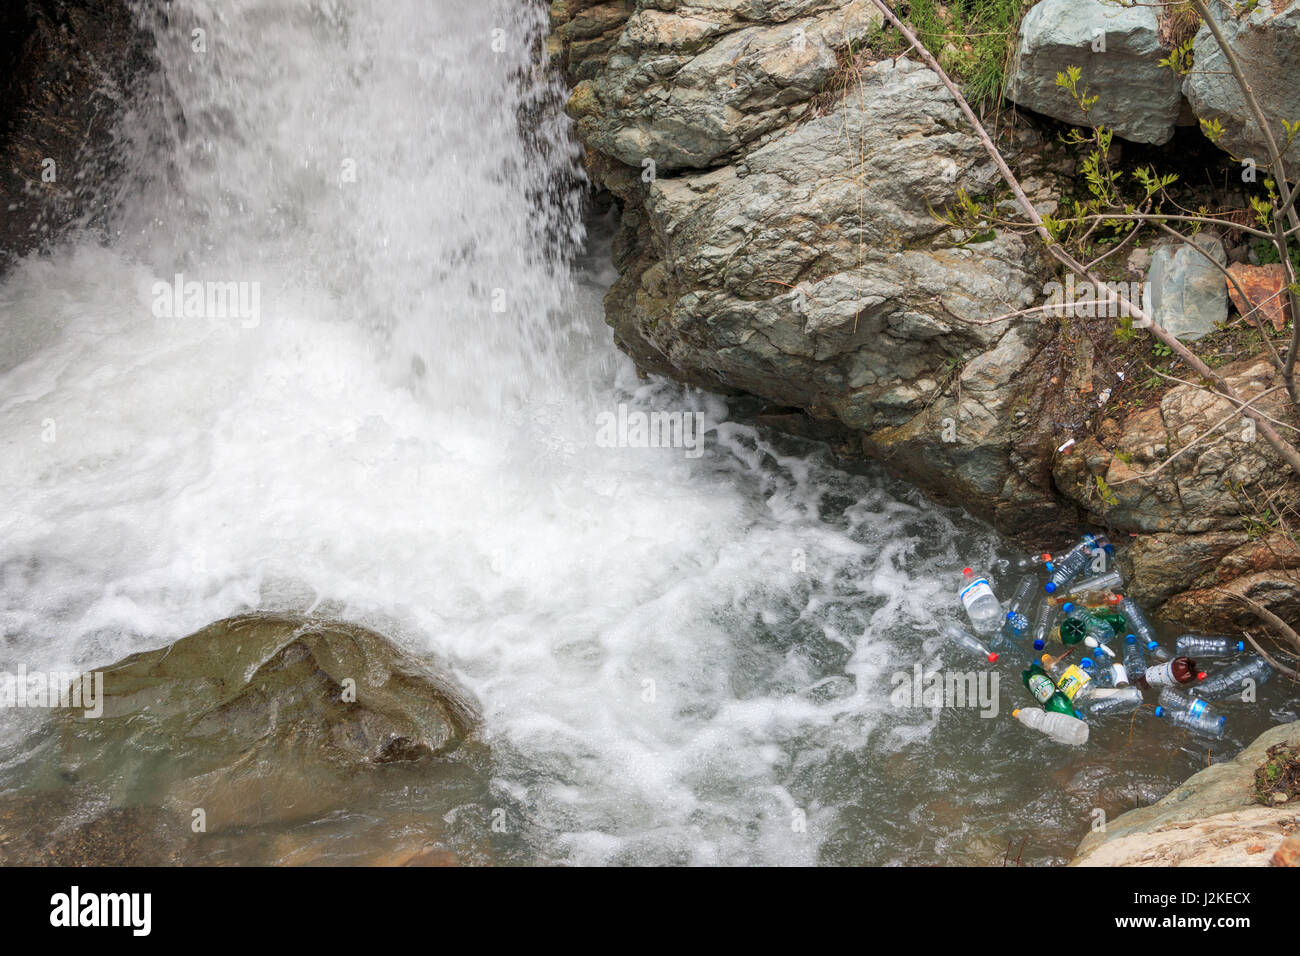 Plastic Bottles floating on a river - Stock Image